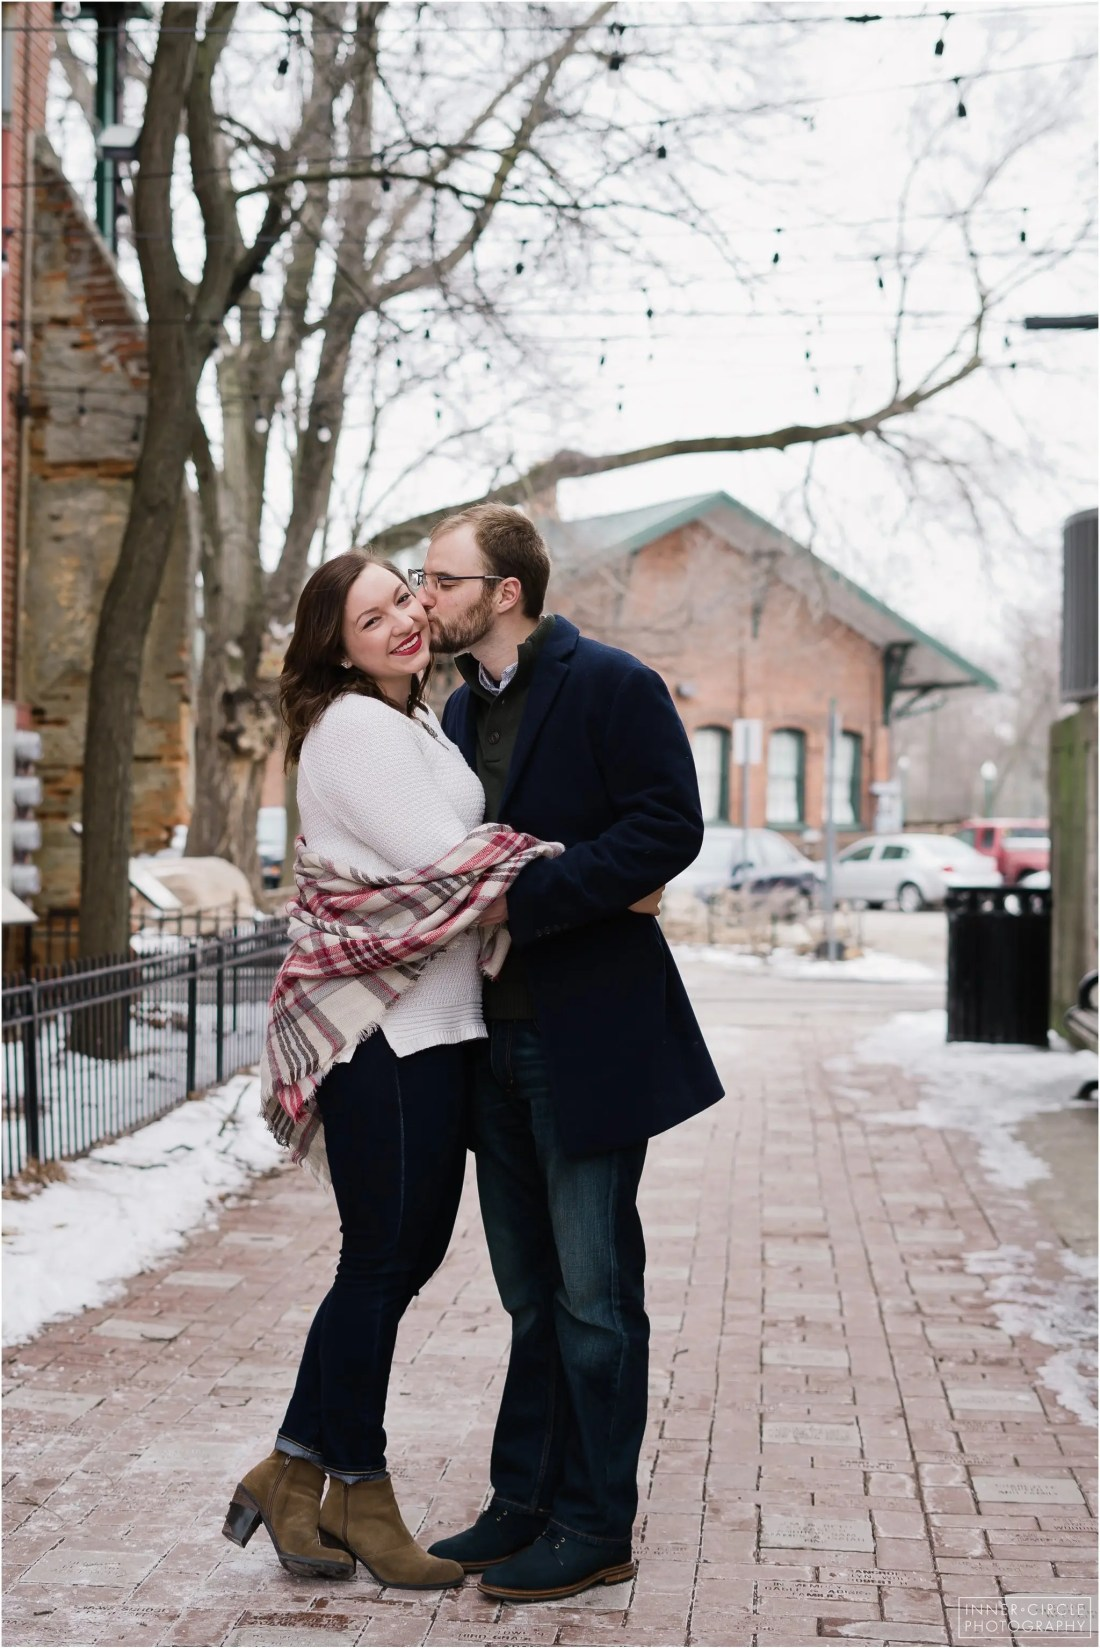 lukelauren_ENGAGED_InnerCirclePhoto_006 Luke + Lauren :: Ypsilanti Engagement Session :: 2019